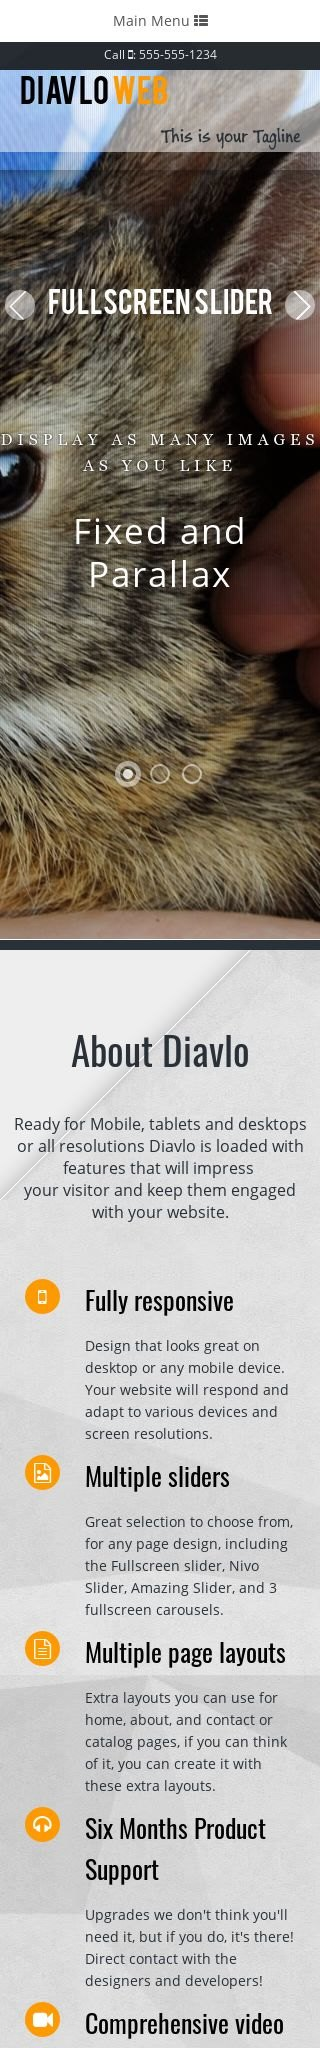 Mobile: Pet-store Dreamweaver Template